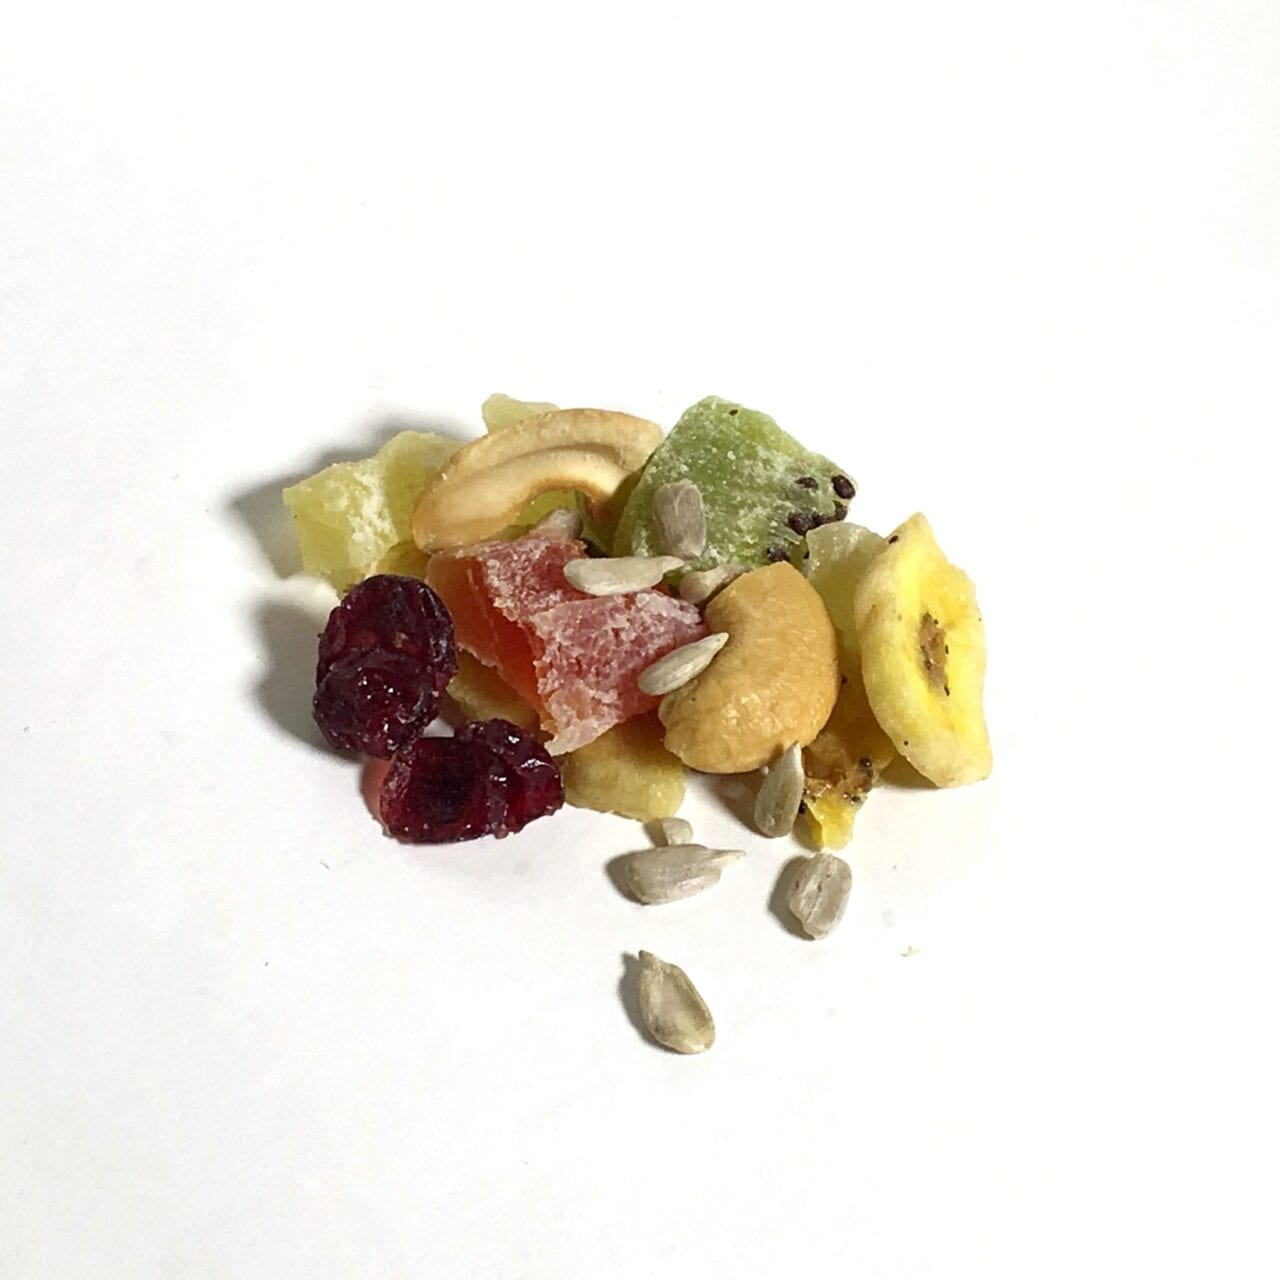 A pile of GORP trail mix including sunflower seeds and fruit.